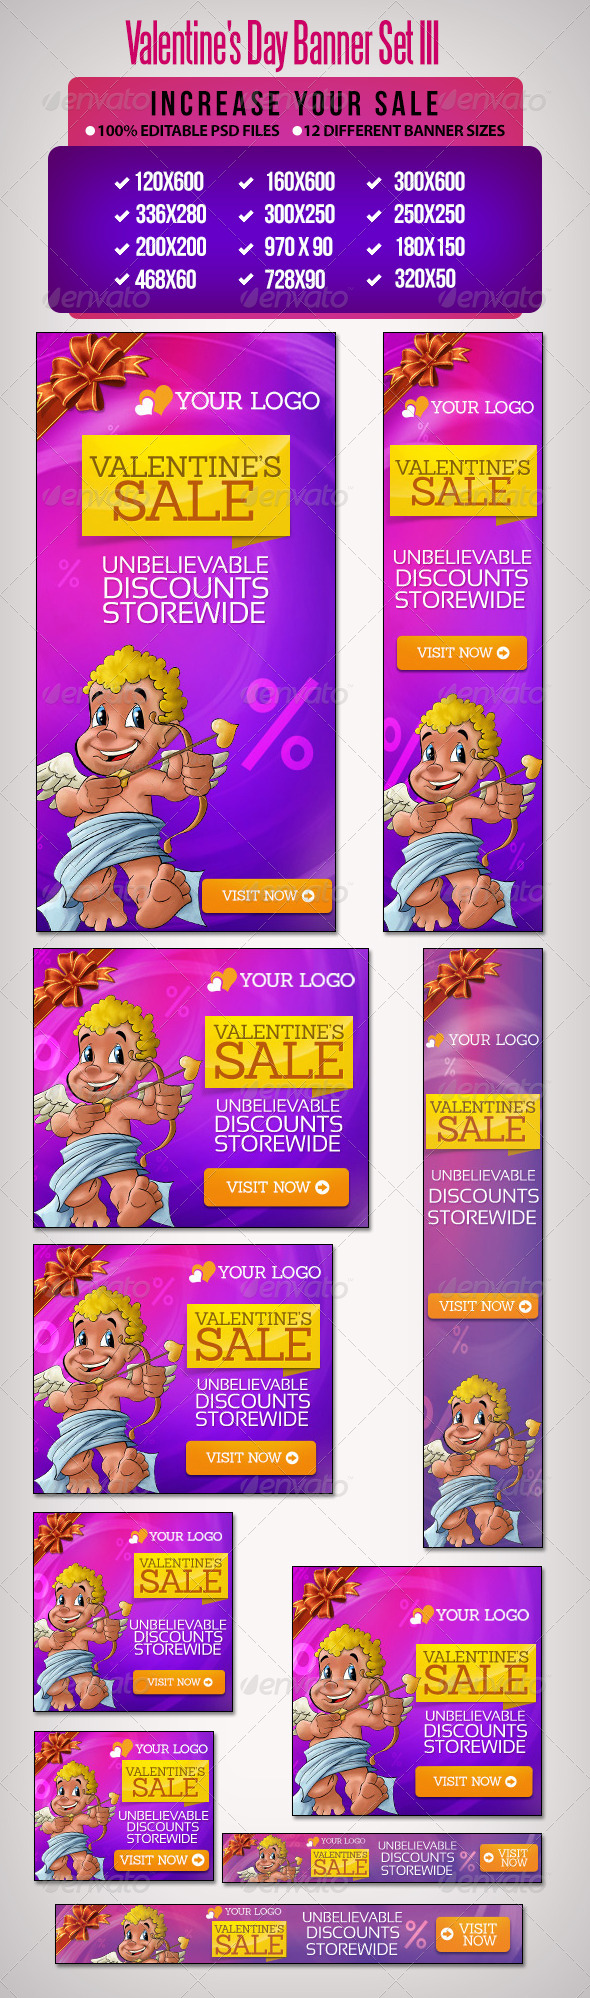 GraphicRiver Valentine s Day Banner Set 3 6608167